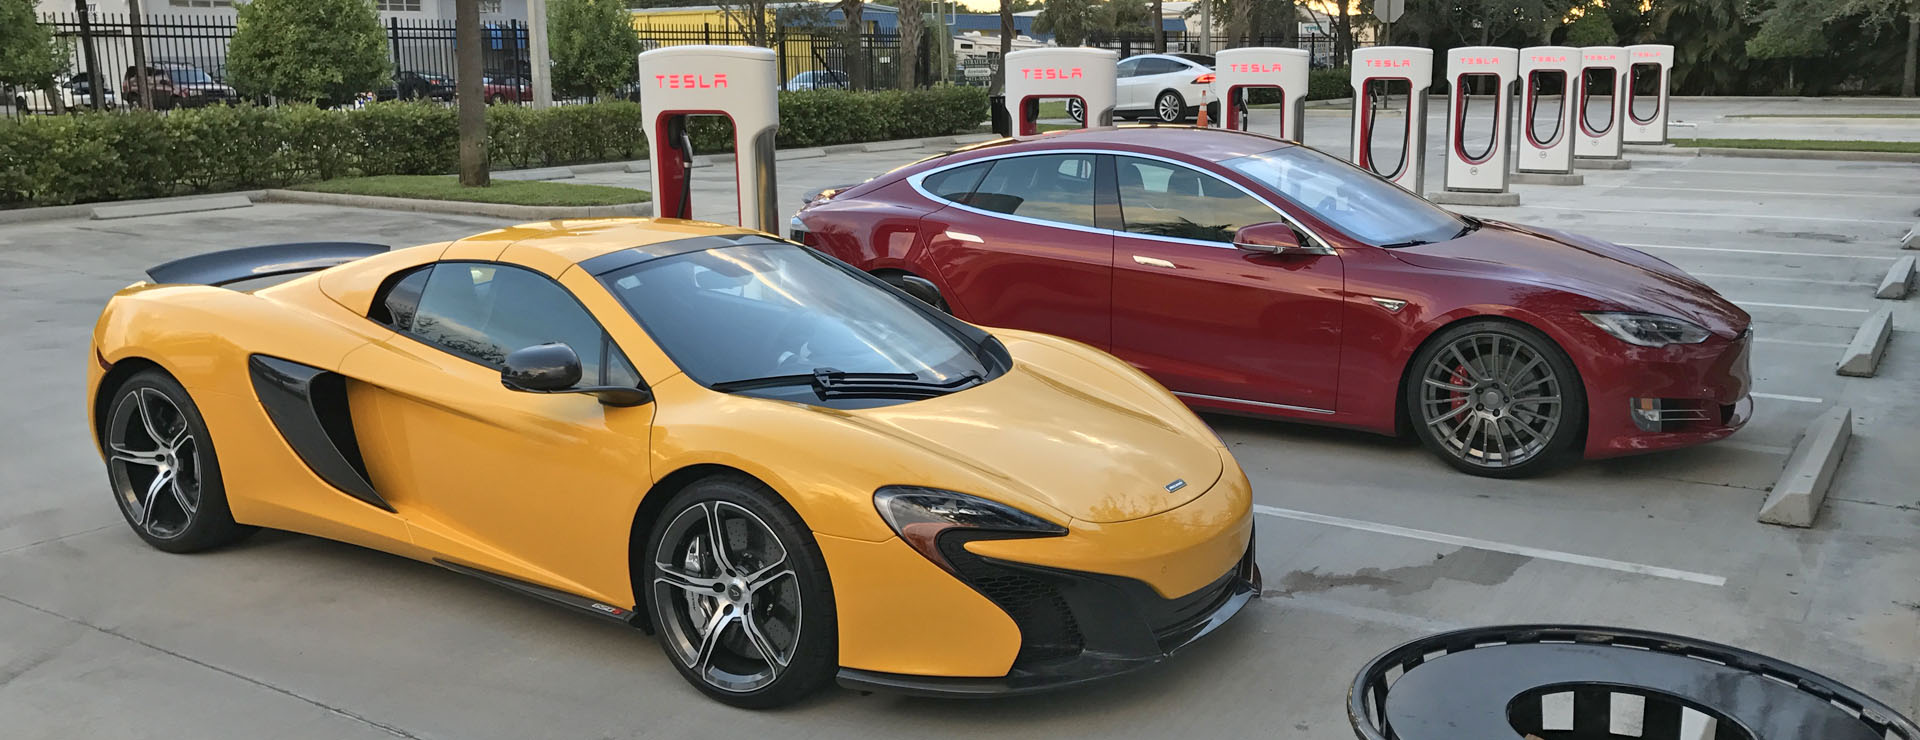 tesla-p100d-supercharging-with-mclaren